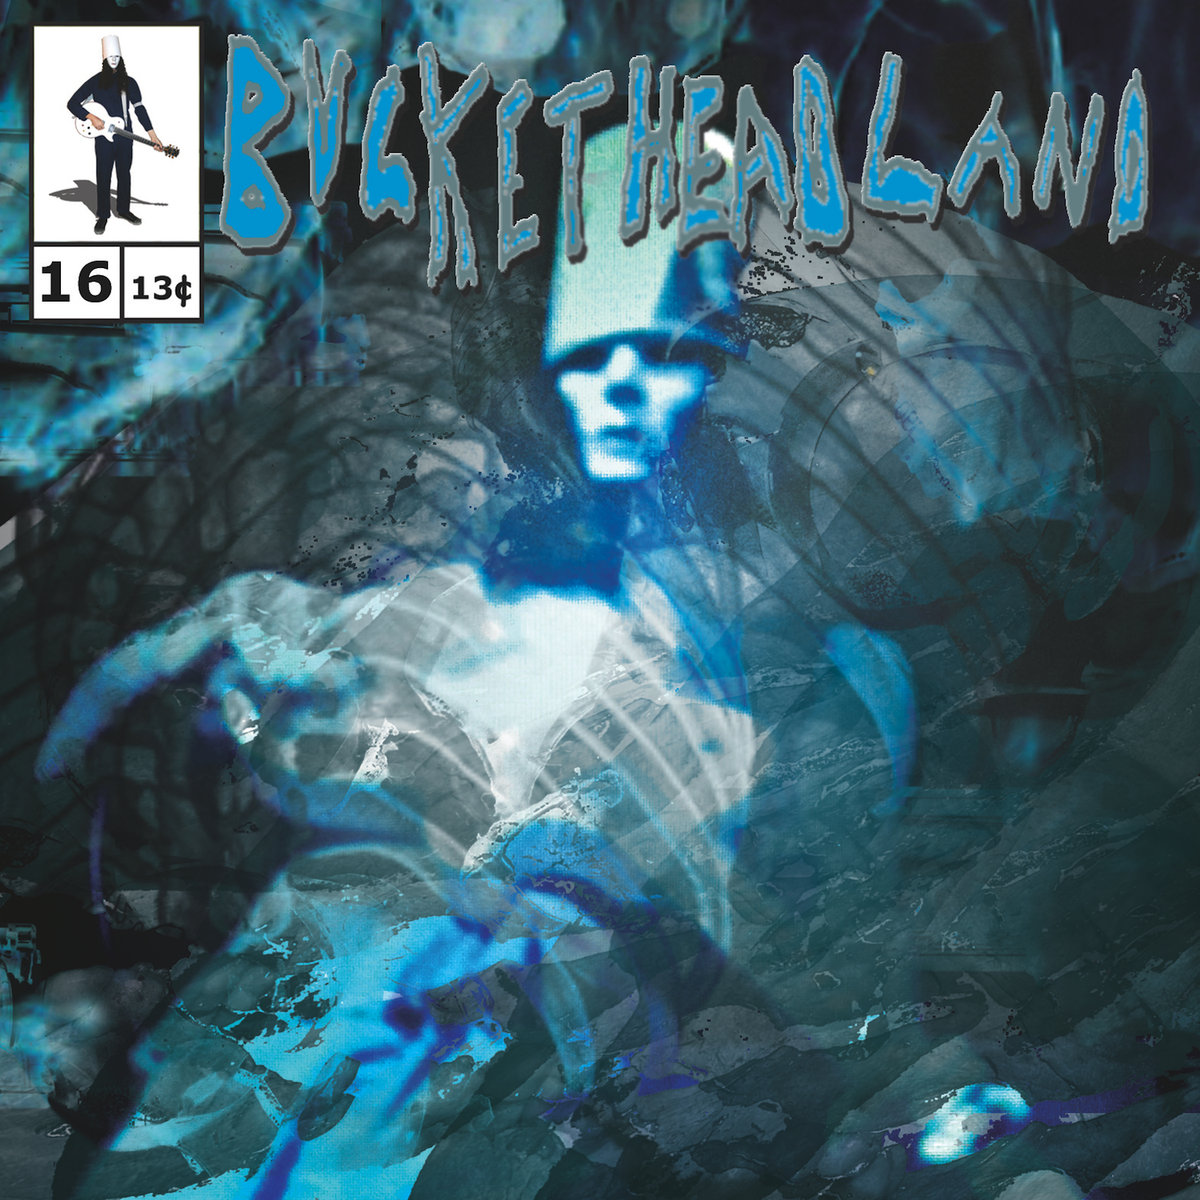 Buckethead - Pike 16: The Boiling Pond (2013)